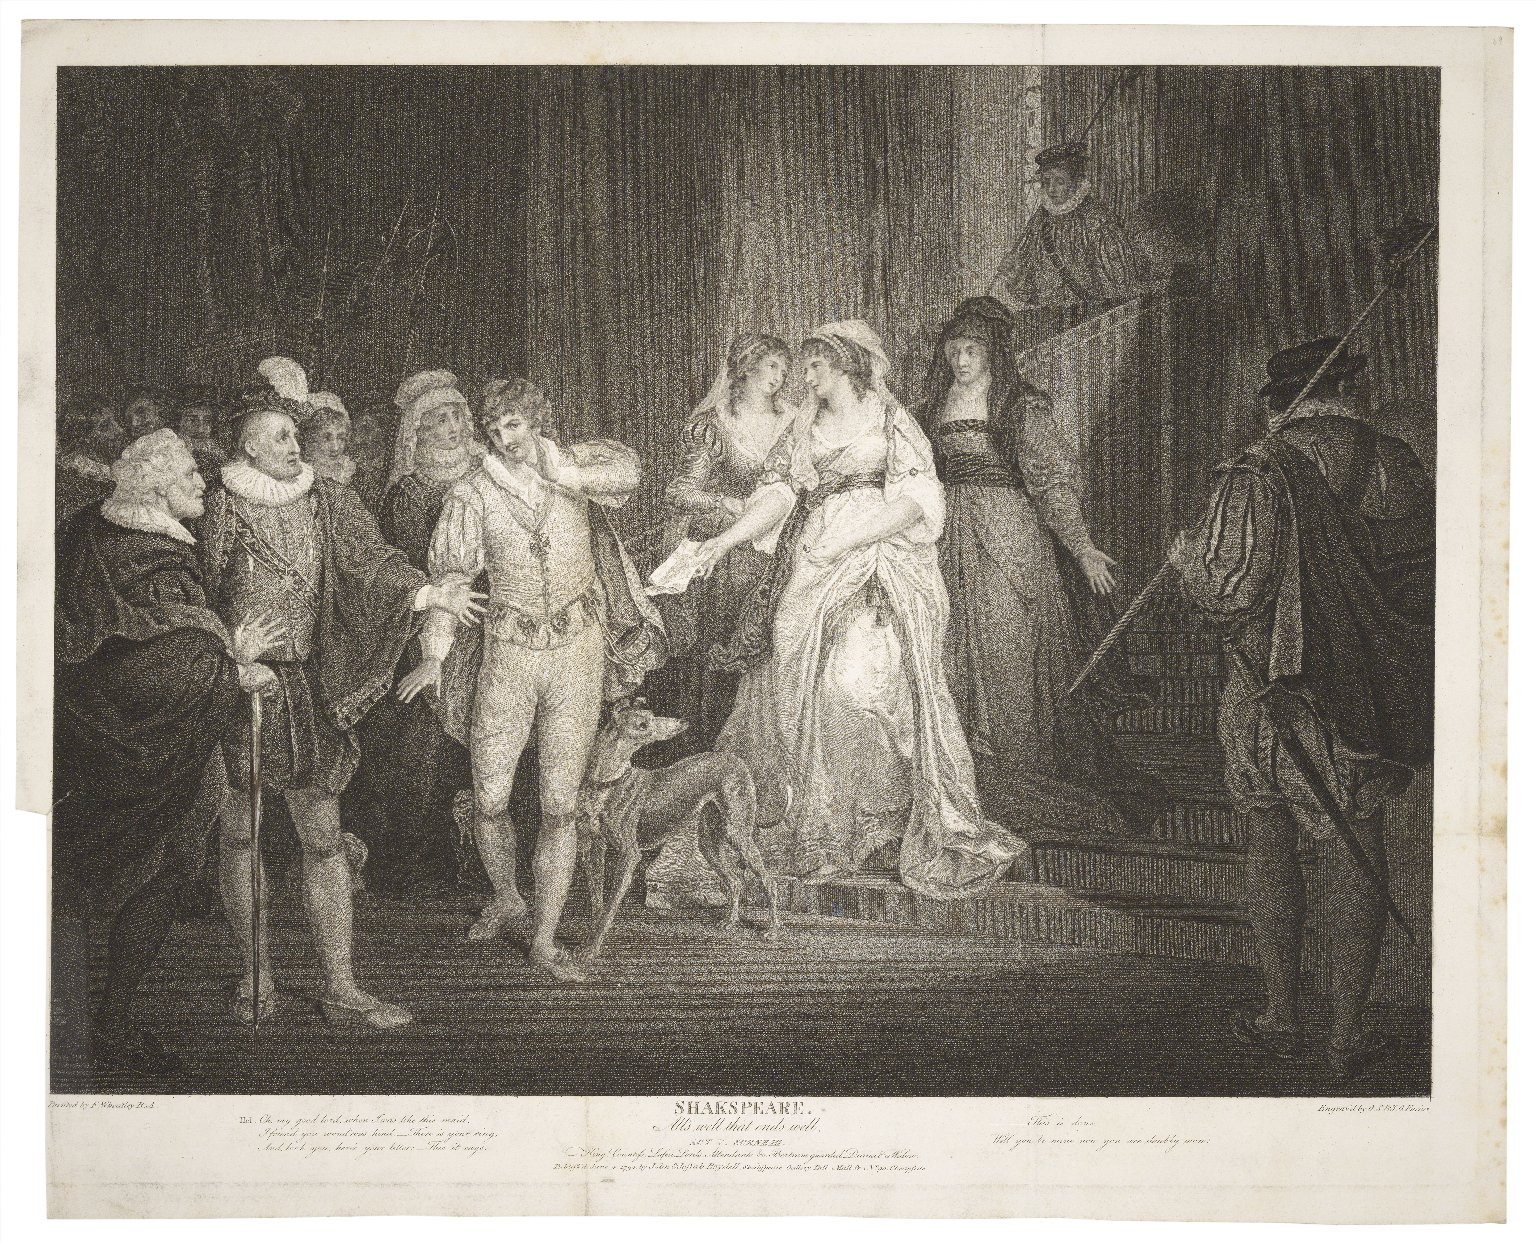 Engraving by Georg Sigmund Facius of the final scene (Act 5, scene 3; 1794)